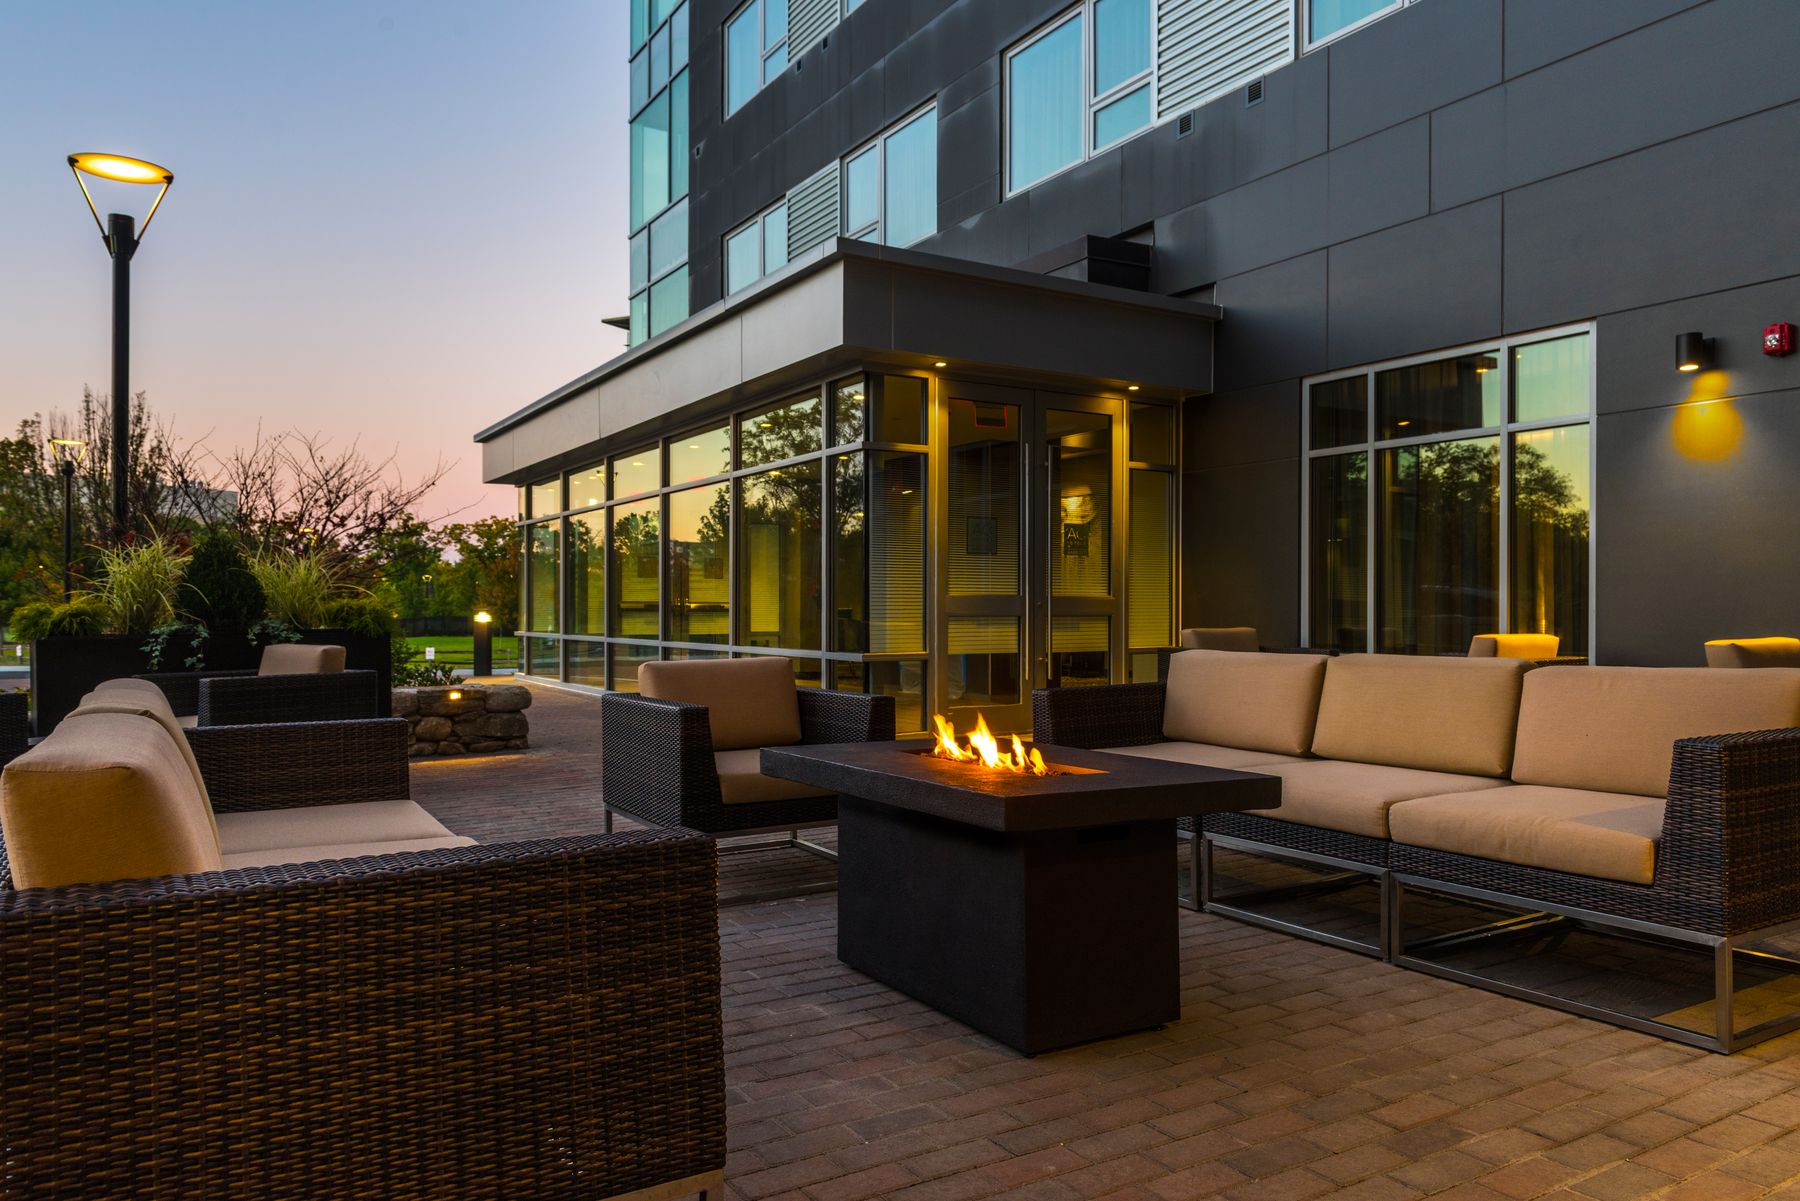 Outdoor patio seating at dusk